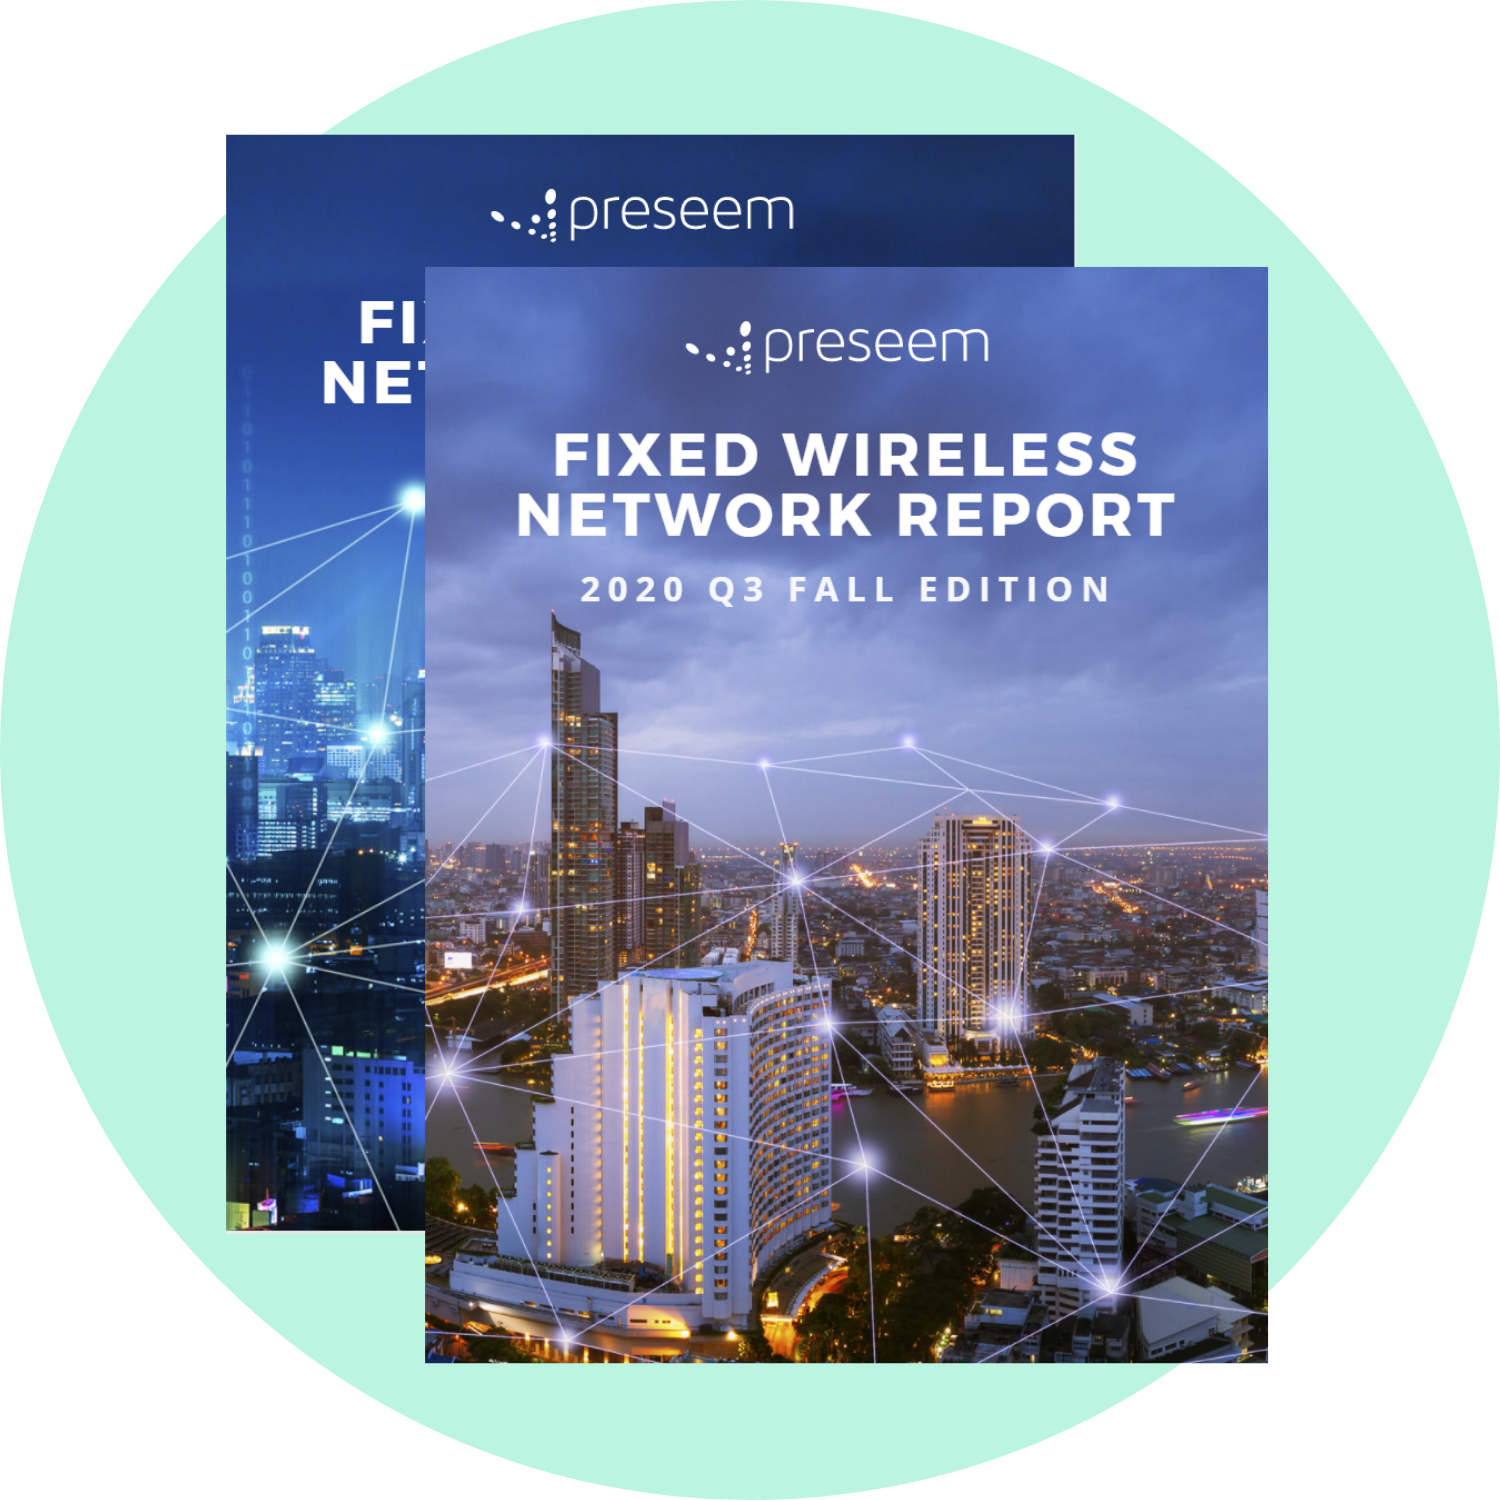 Stay Connected with The Fixed Wireless Network Report